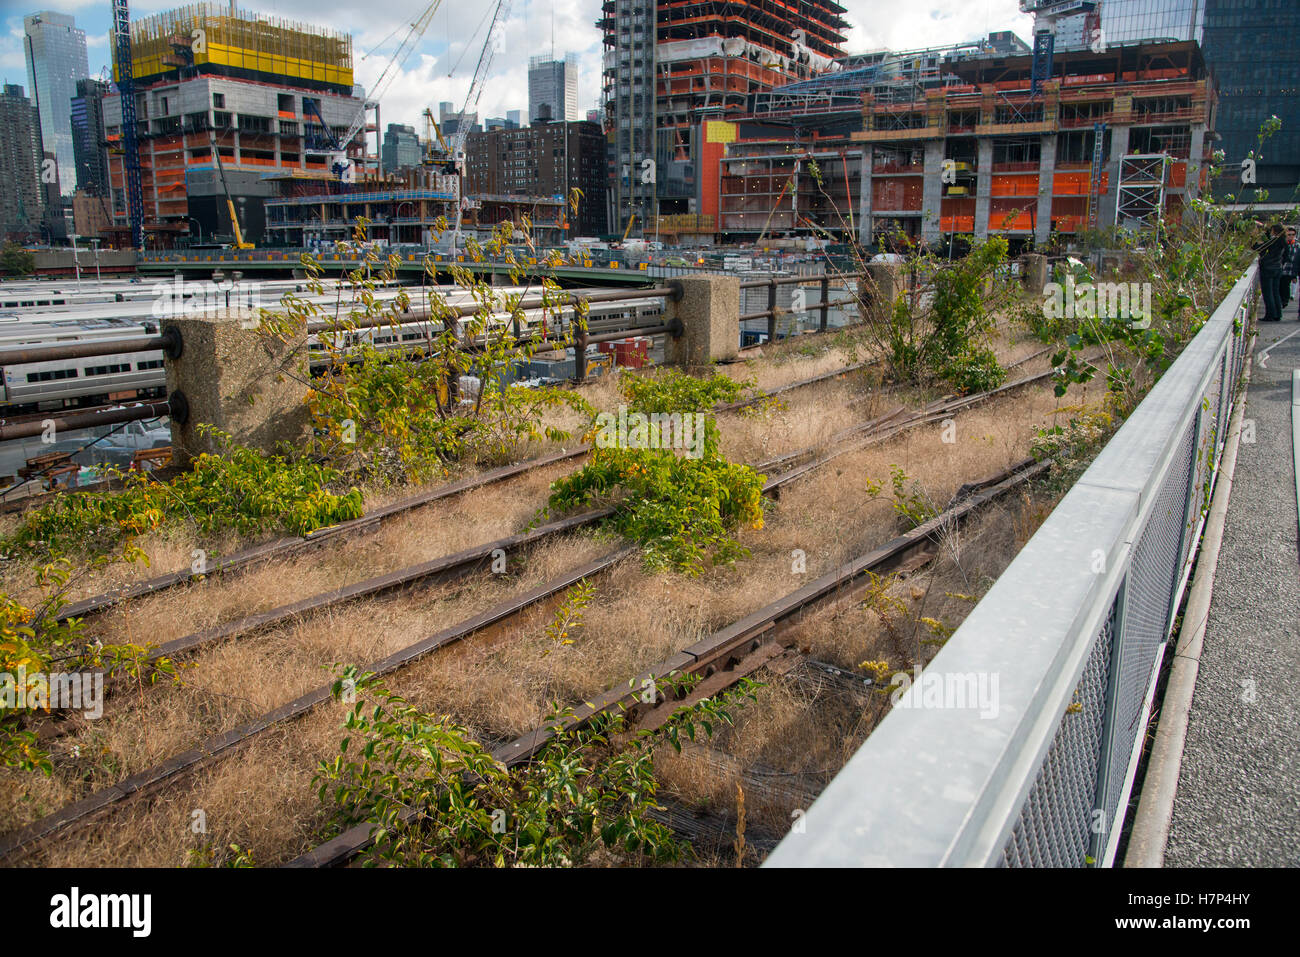 Disused train lines on the raised railway, now the Highline park, overlooking MTA metro train yards near the Hudson - Stock Image